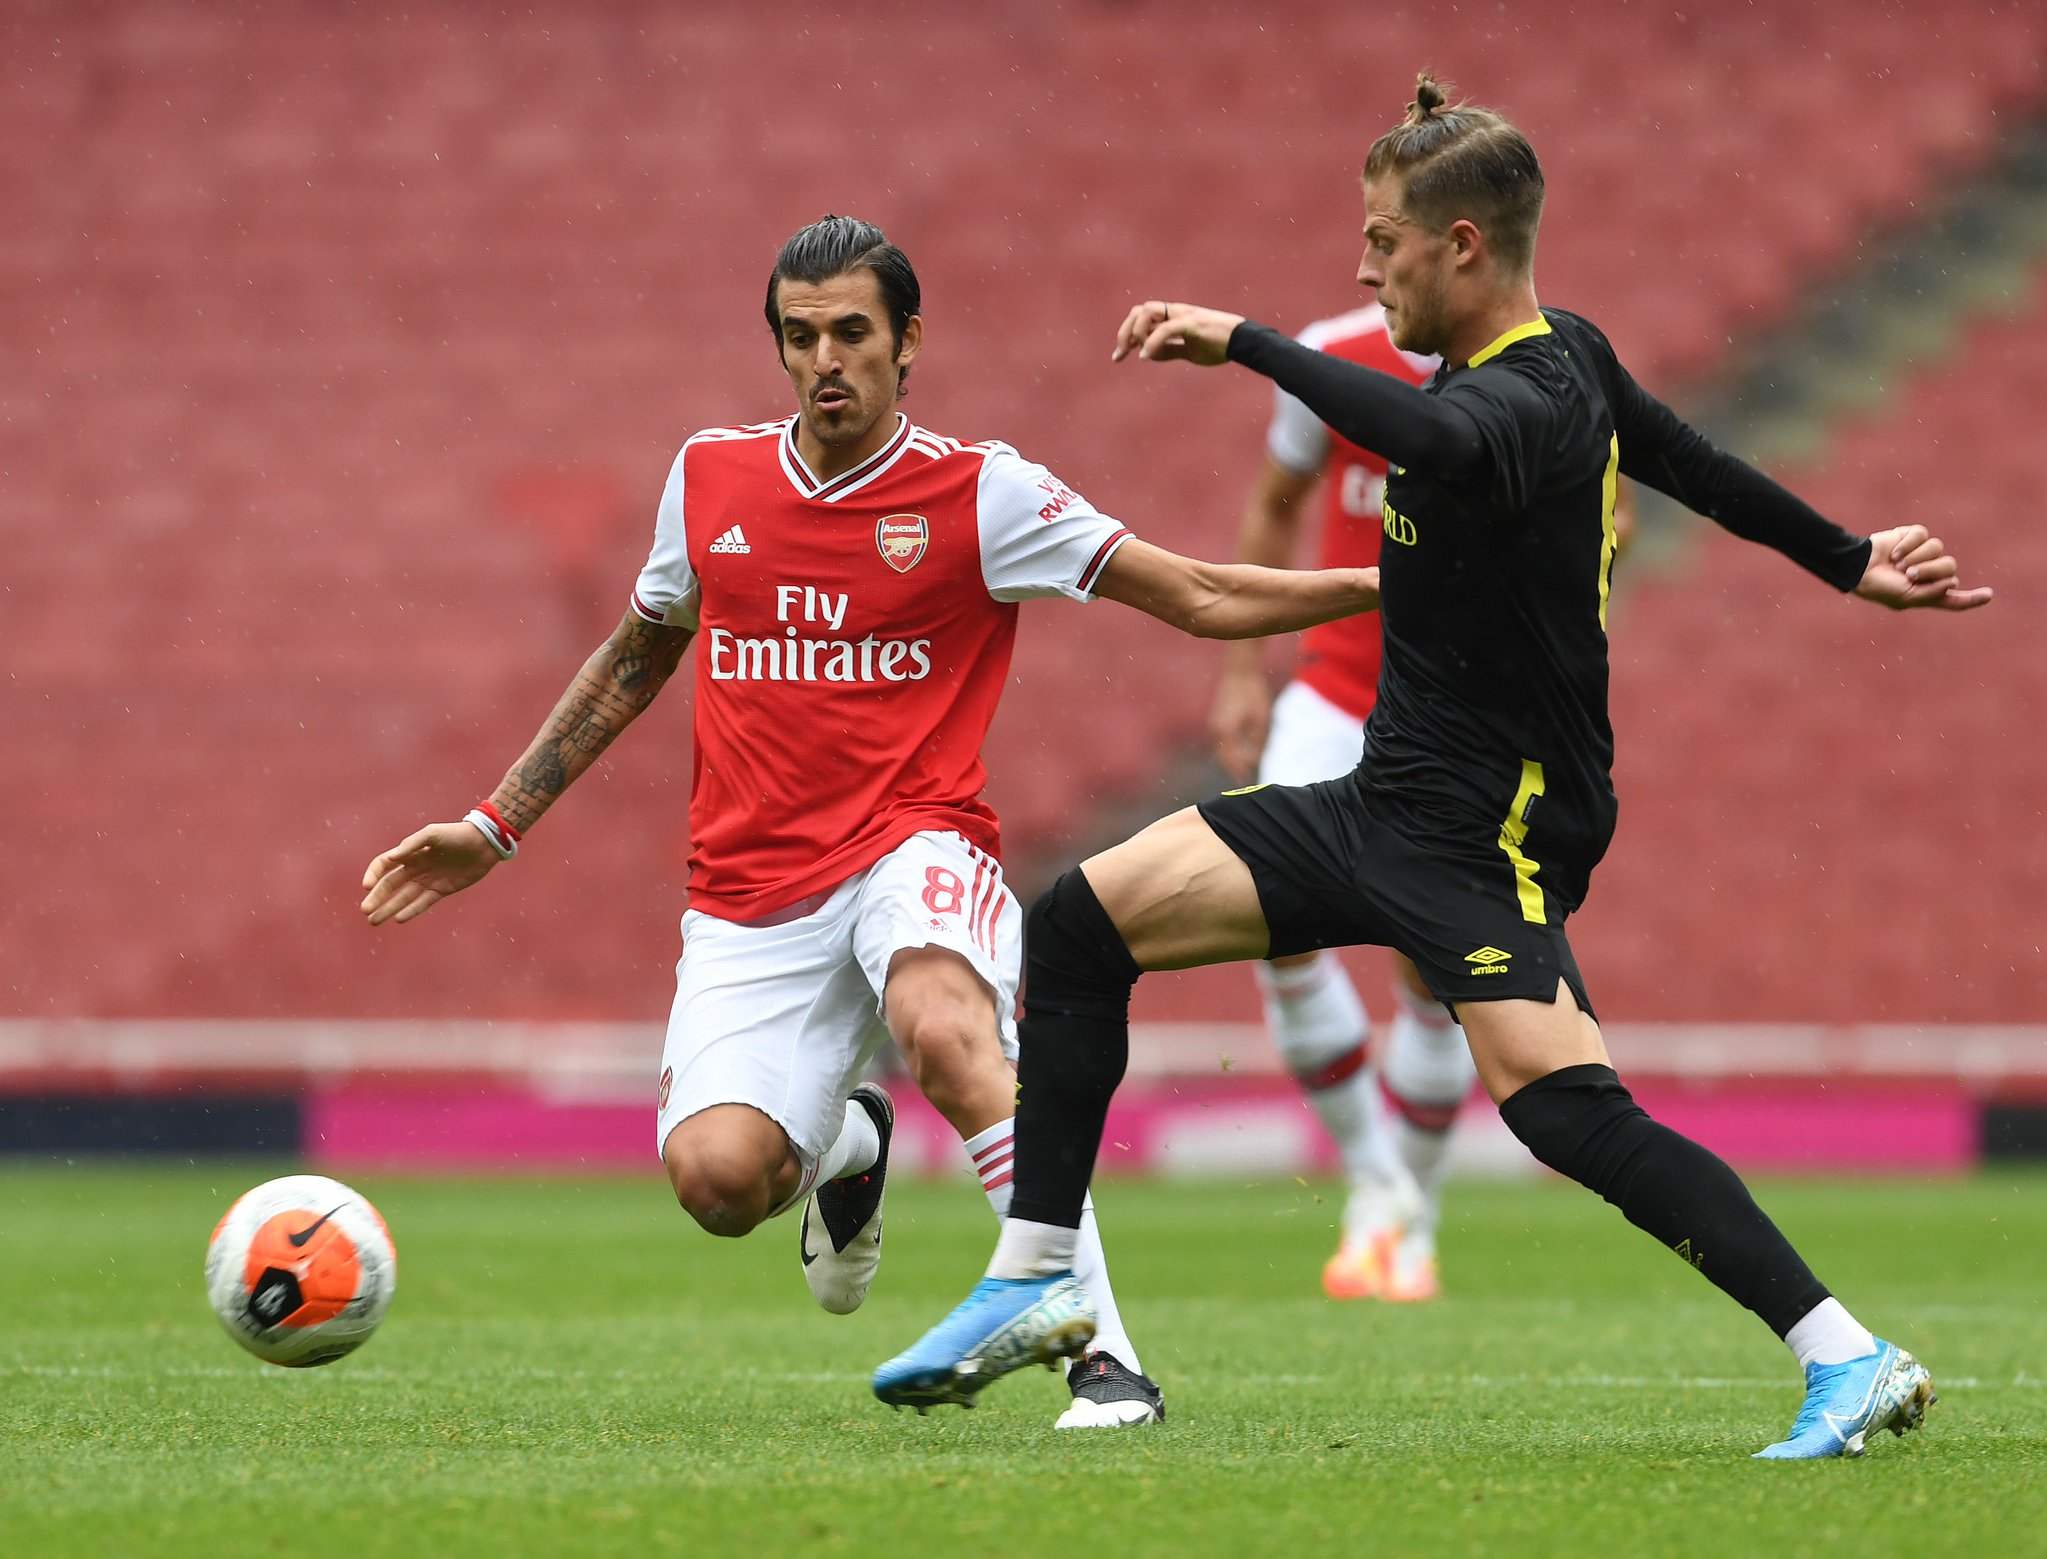 Arsenal Lose To Championship Club Brentford In Friendly